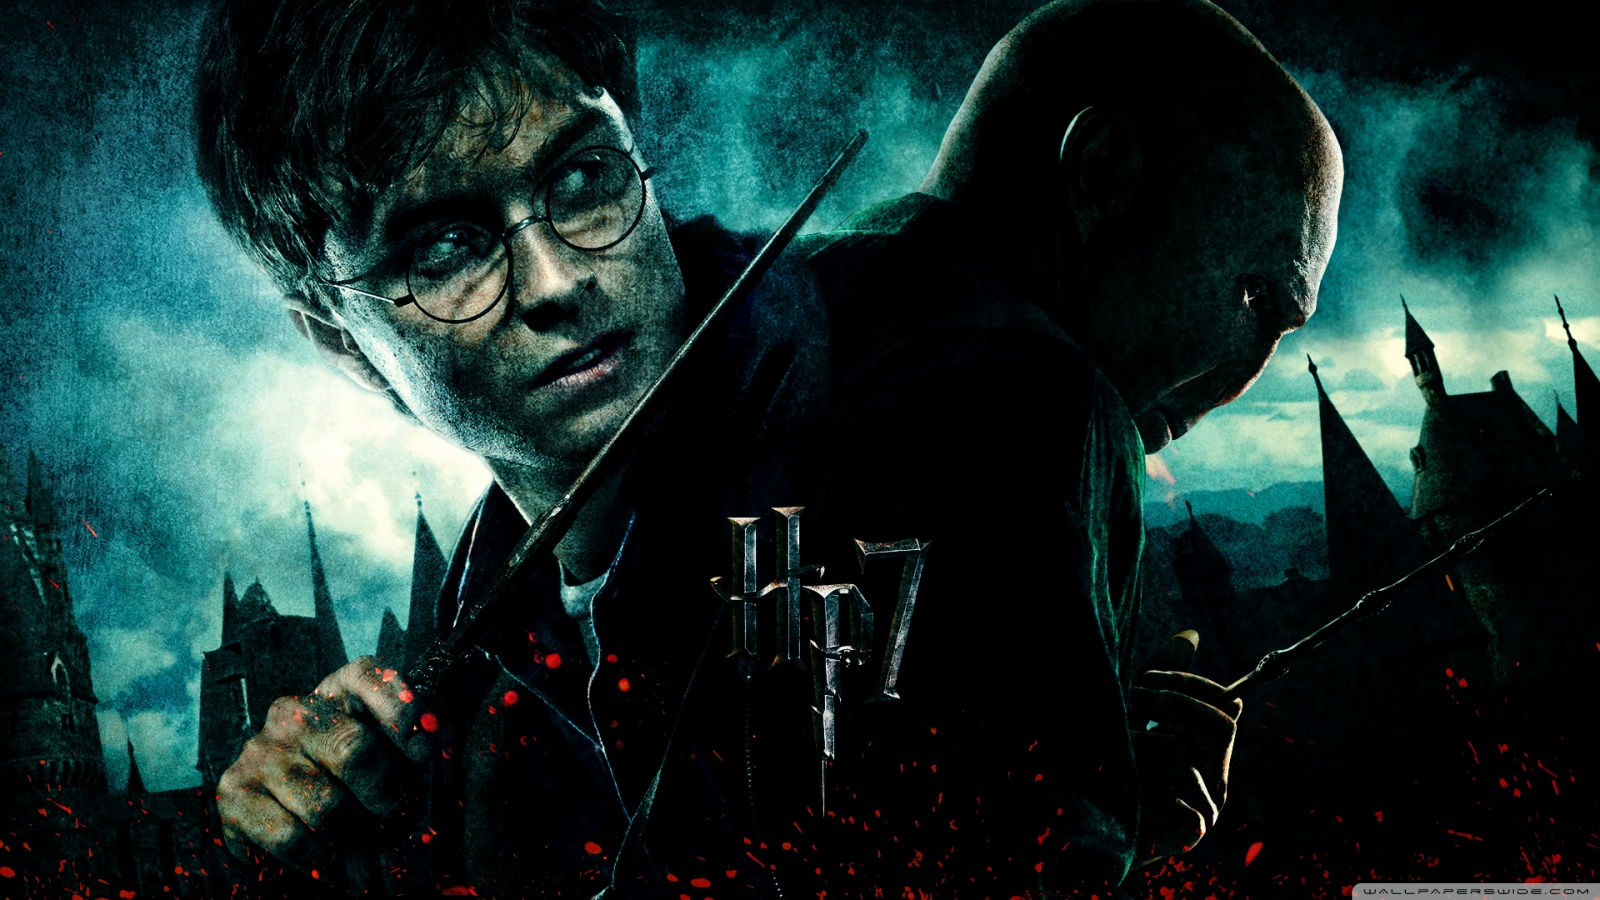 harry potter 7 wallpapers